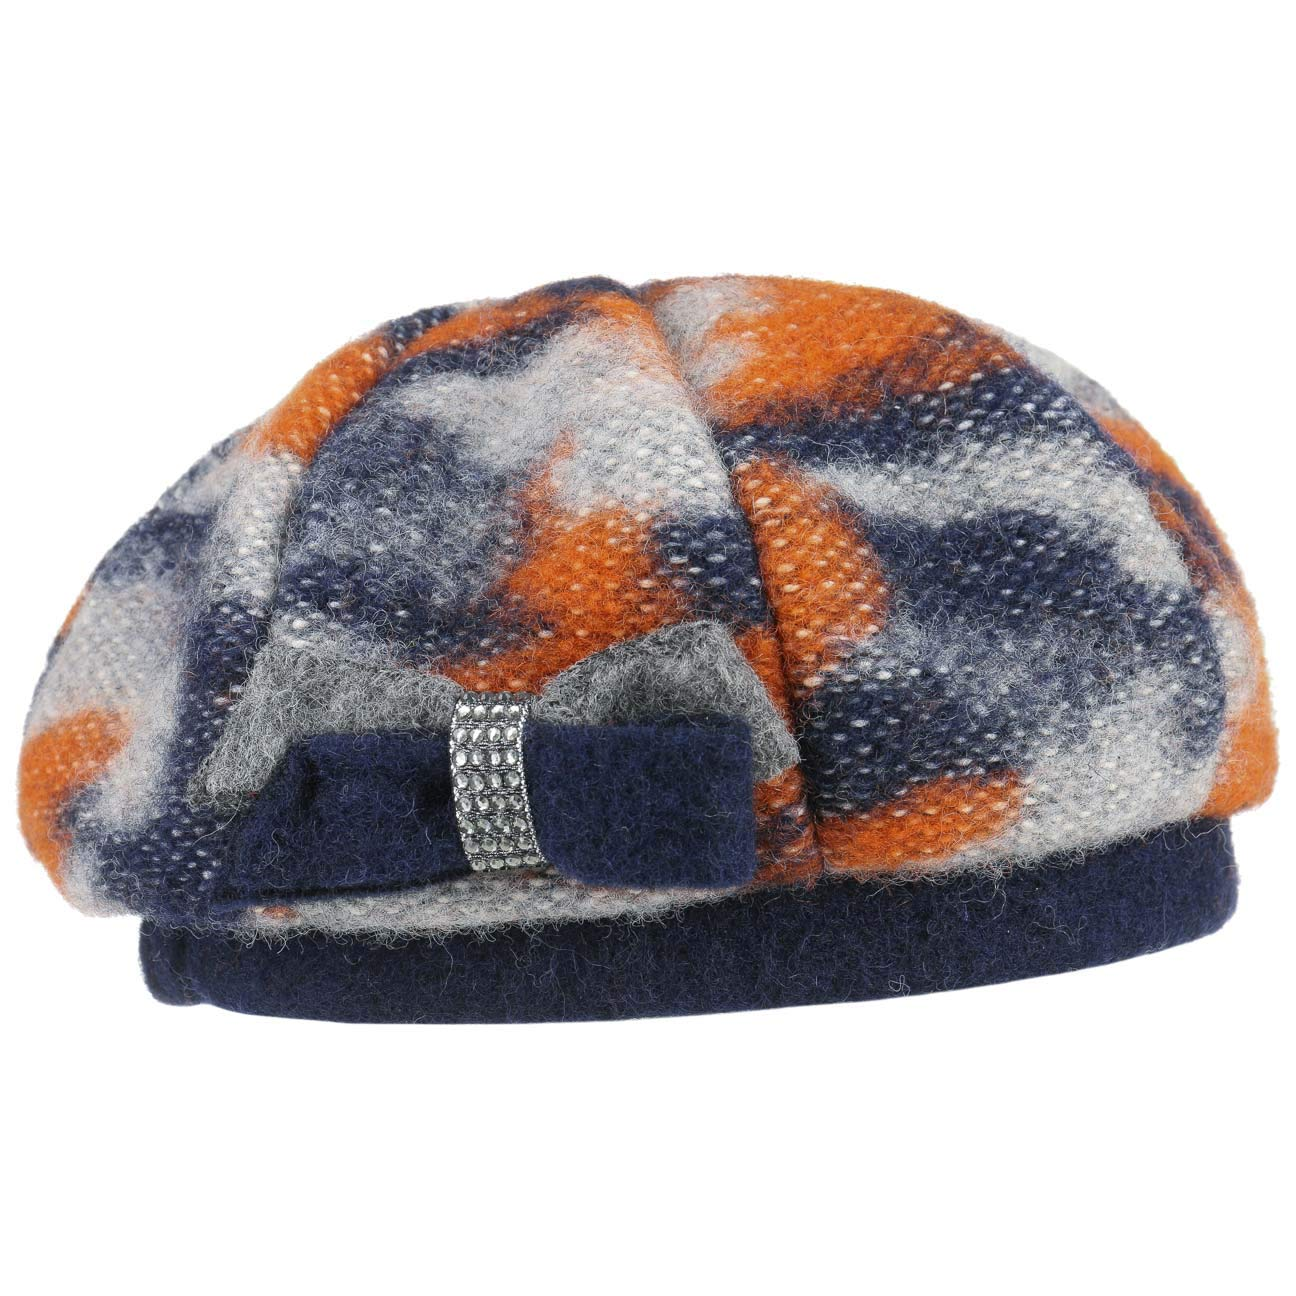 75b6dc4b Berets - Blowout Sale! Save up to 61% | Pendleton Hat Company